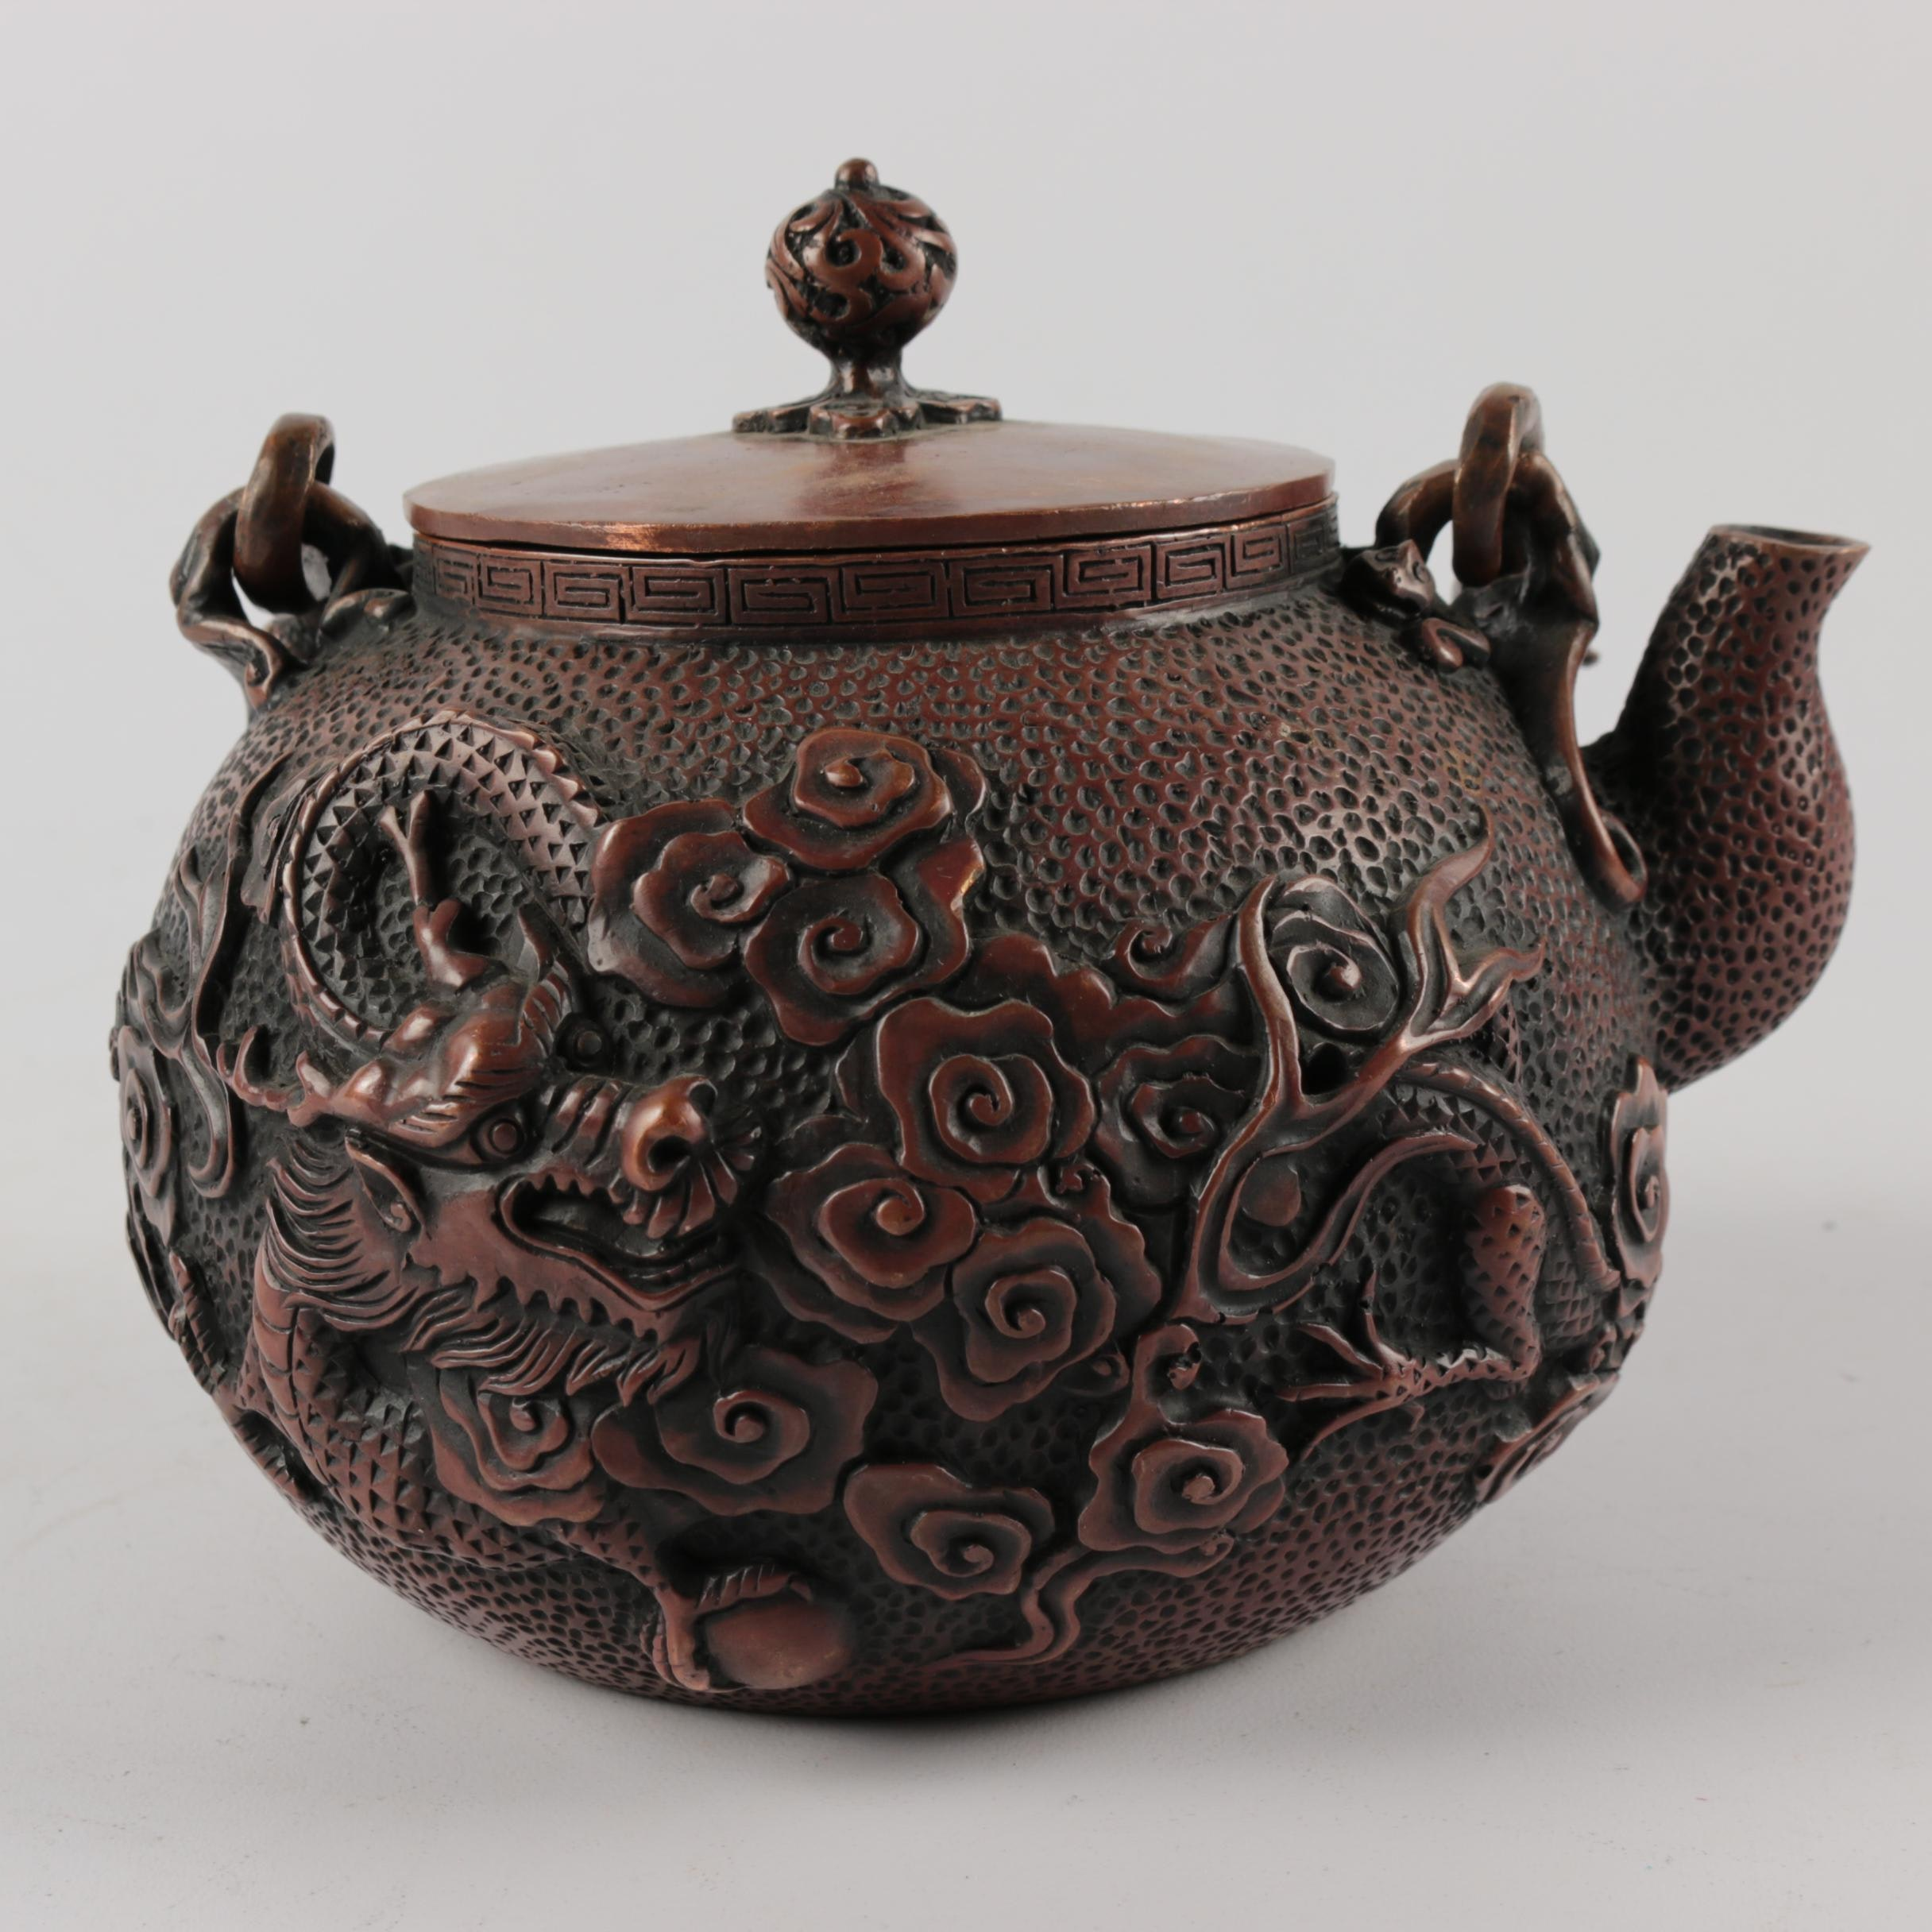 Chinese Embossed Metal Dragon Themed Teapot with a Bronze Finish